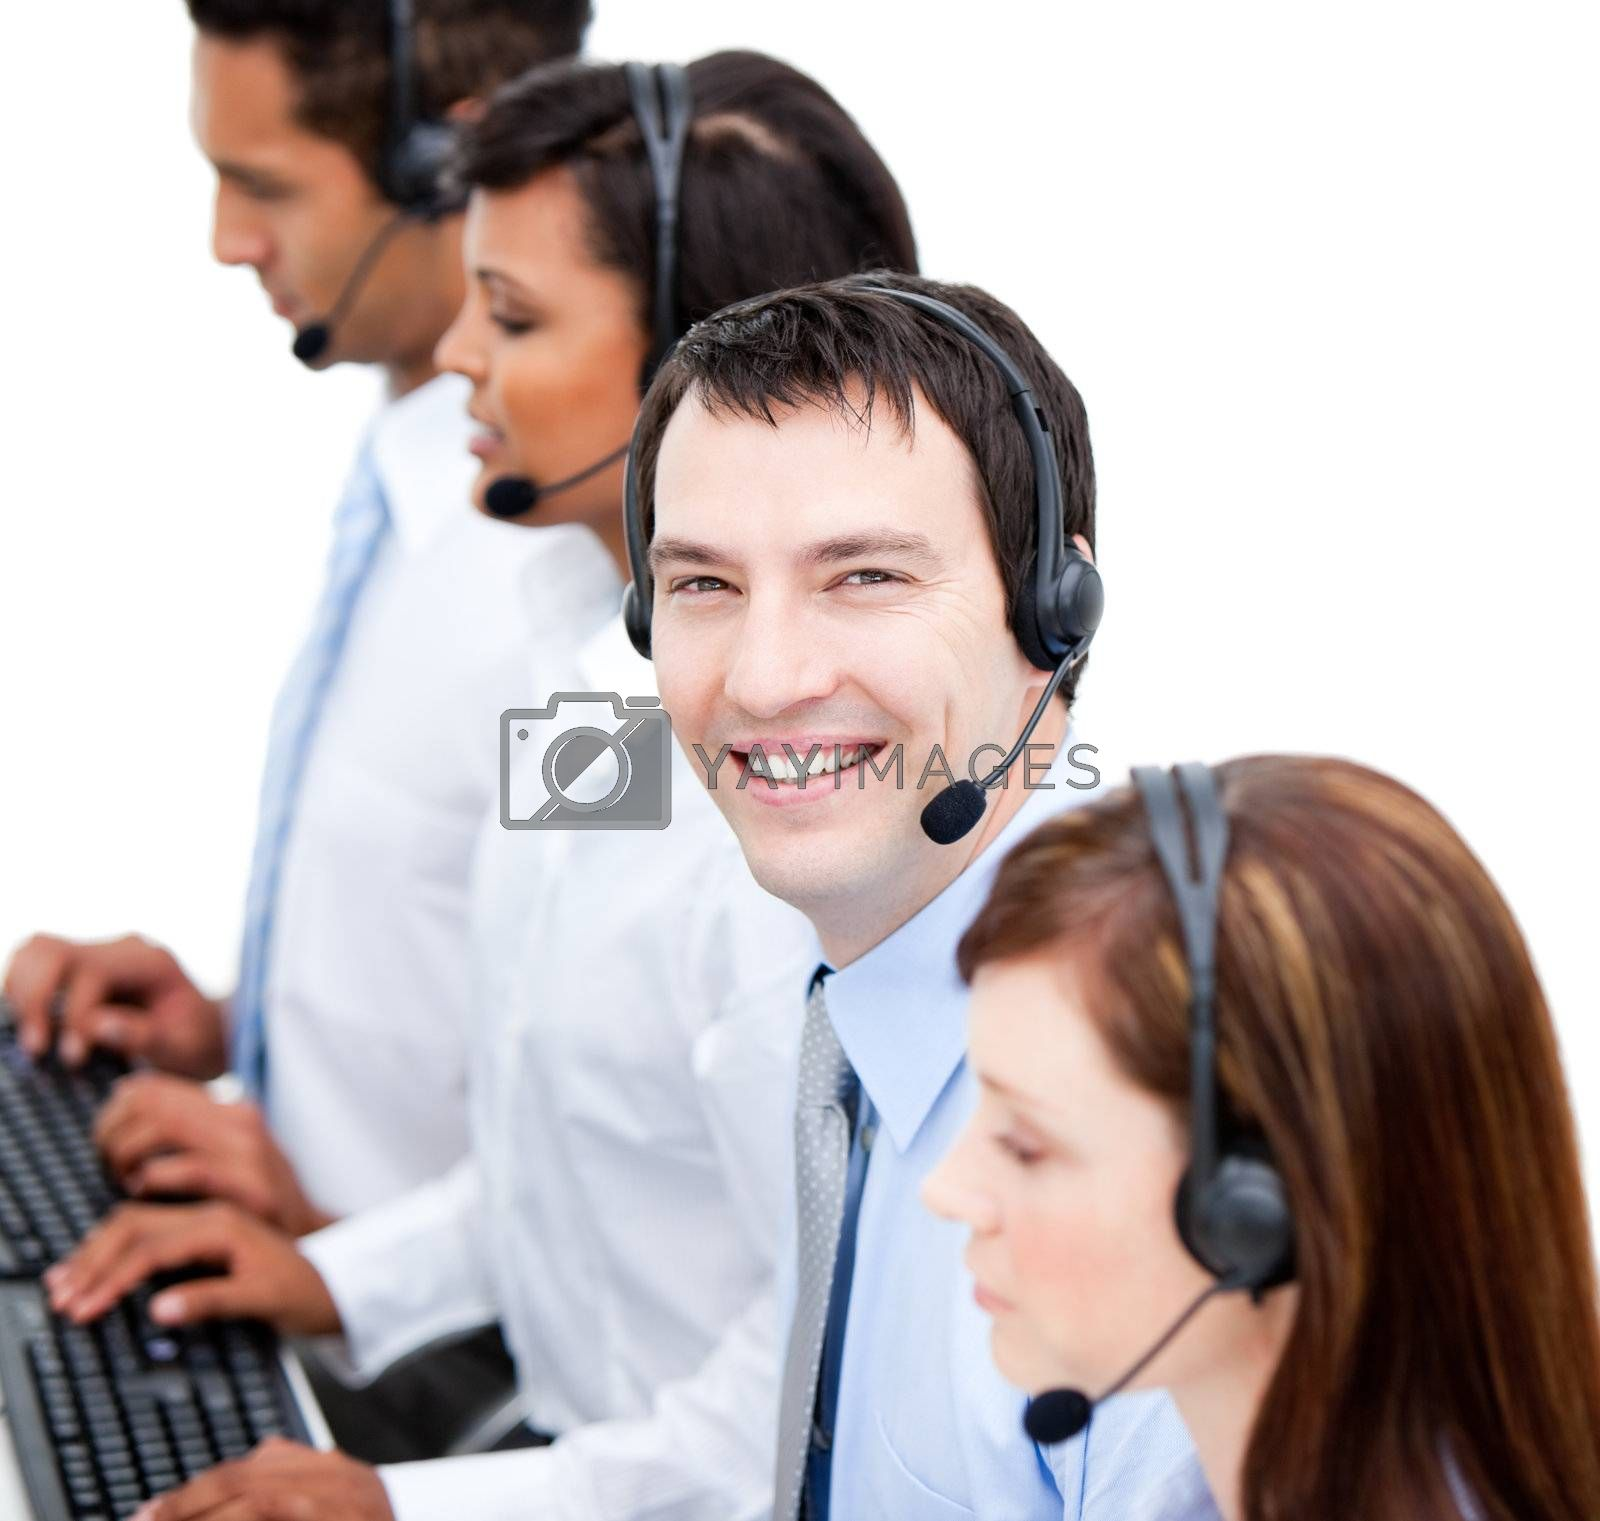 Portrait of smiling business team with  headset on against white background